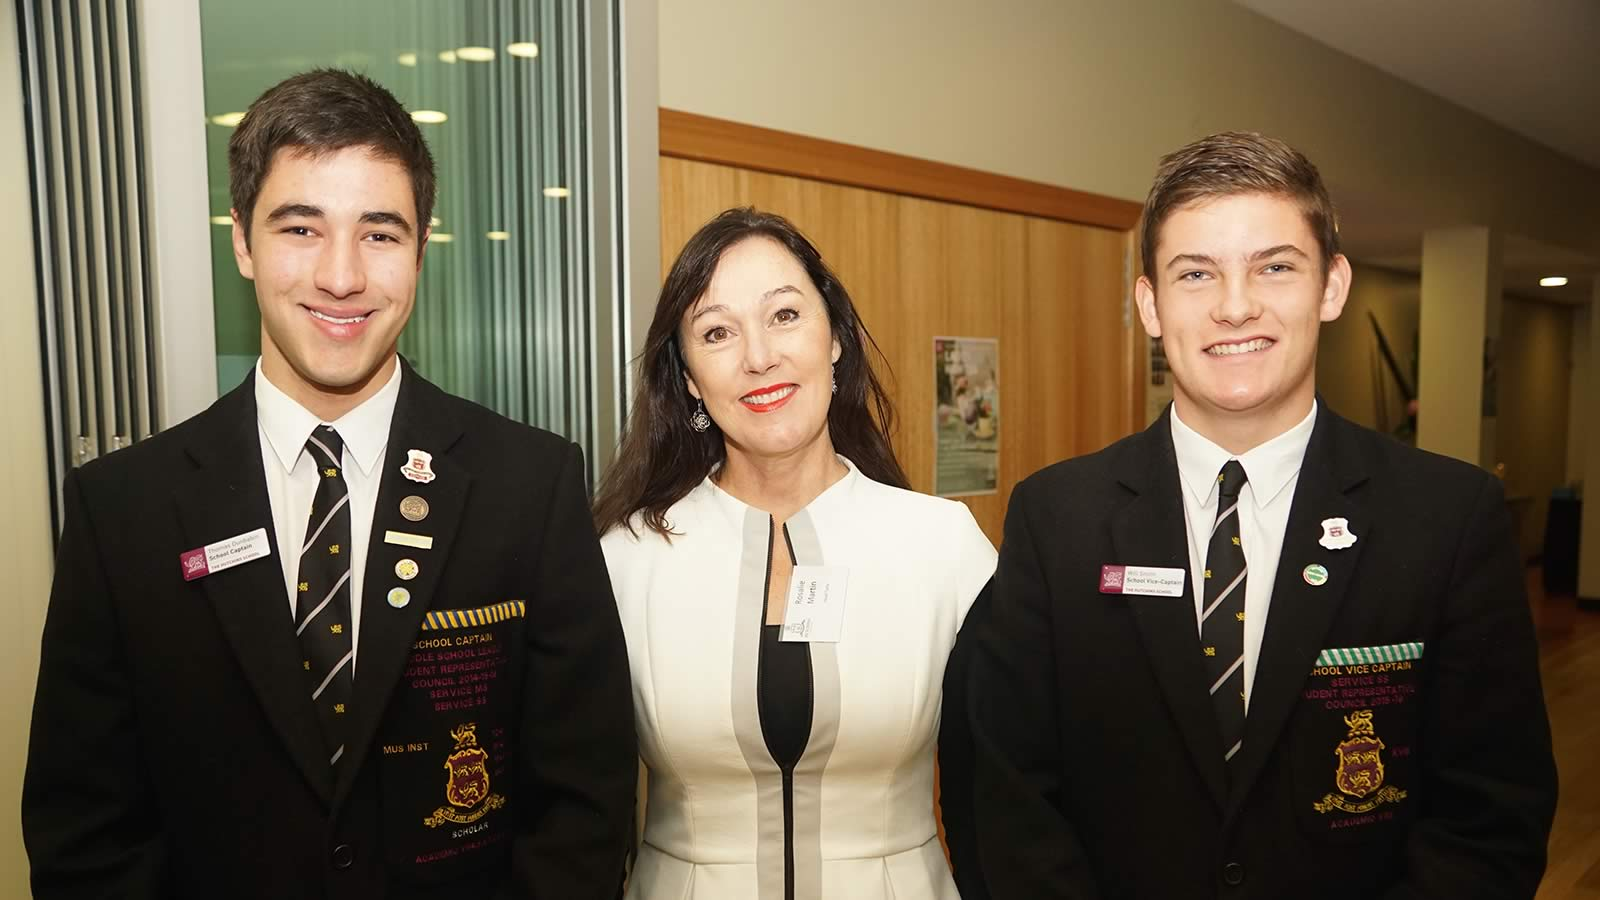 Thomas Dunbabin, School Captain, Rosie Martin, and William Smith, School Vice-Captain.